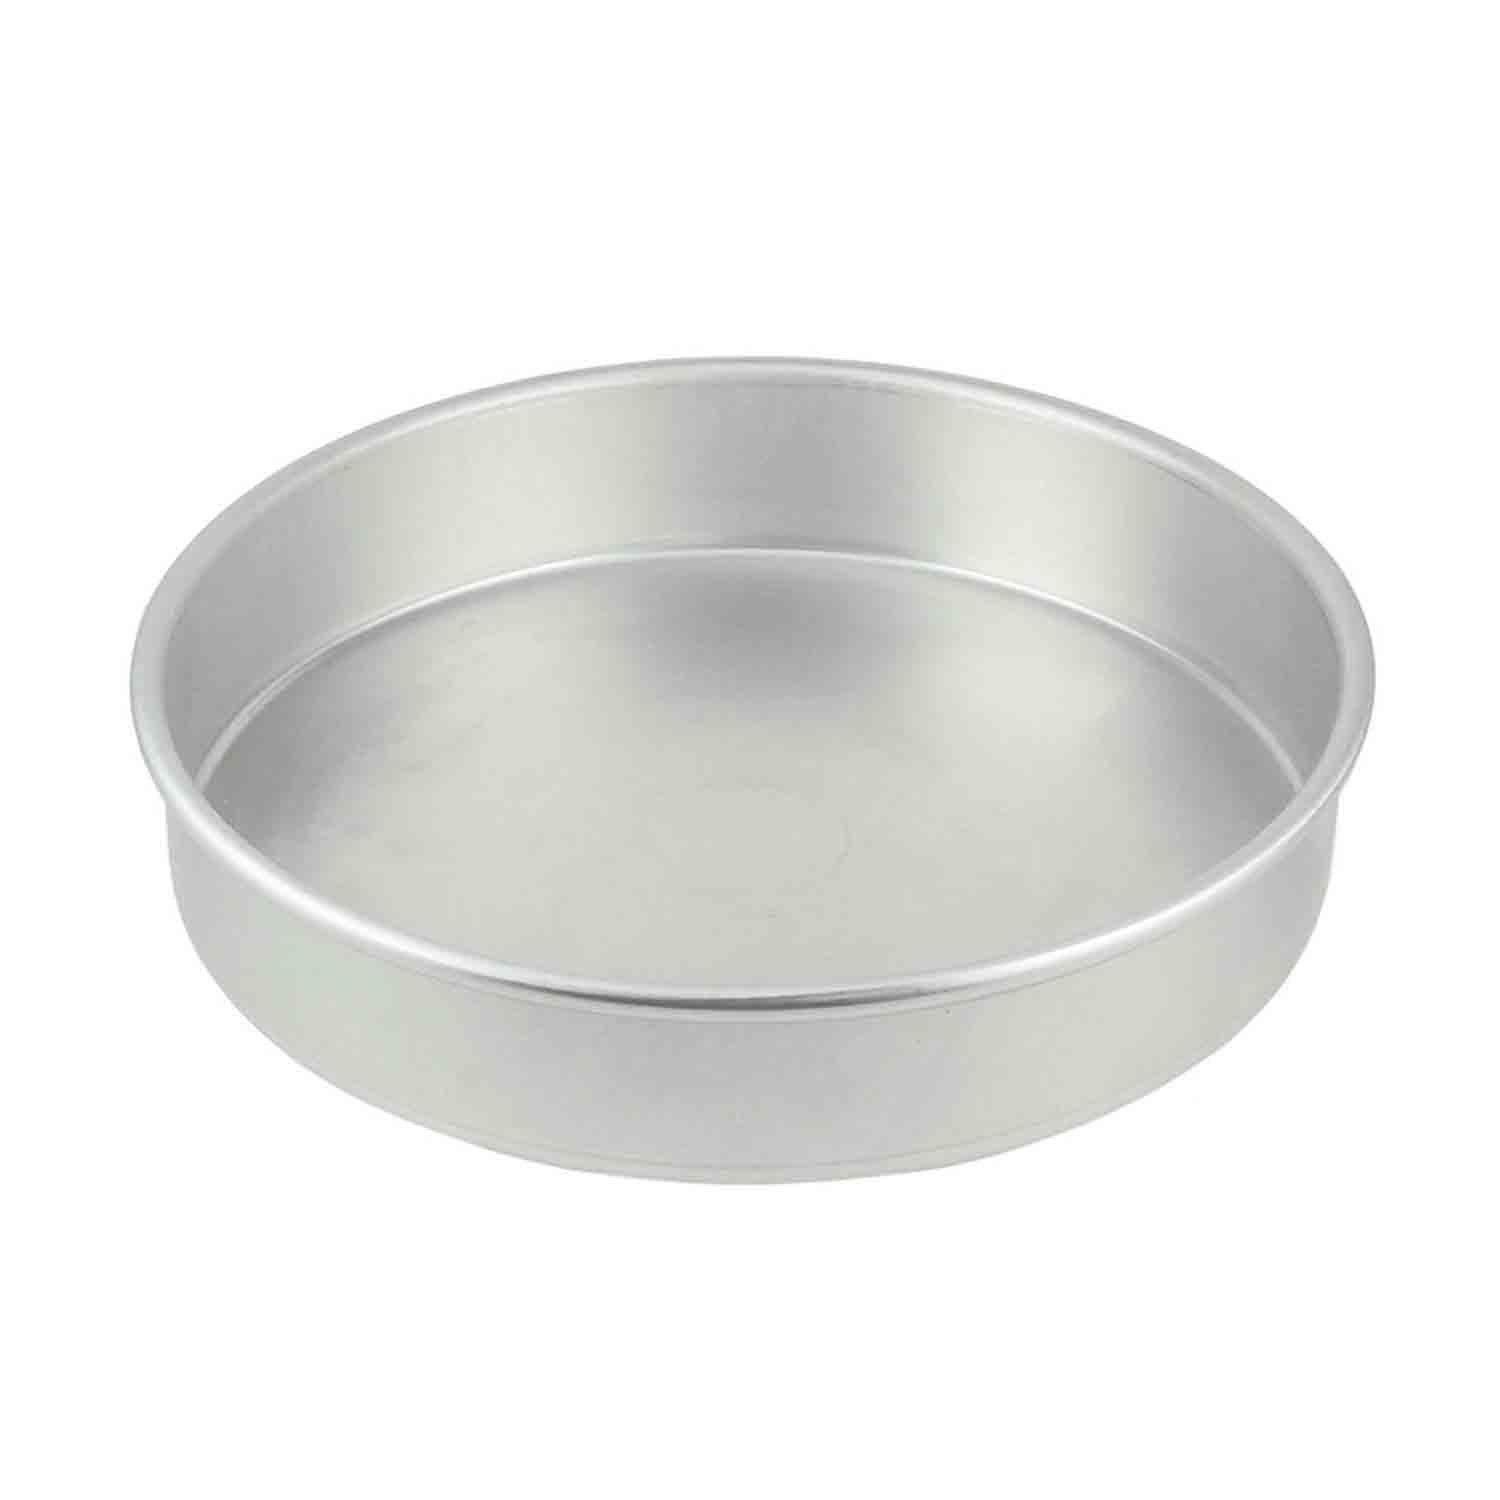 "11 x 2"" Magic Line Round Cake Pan"